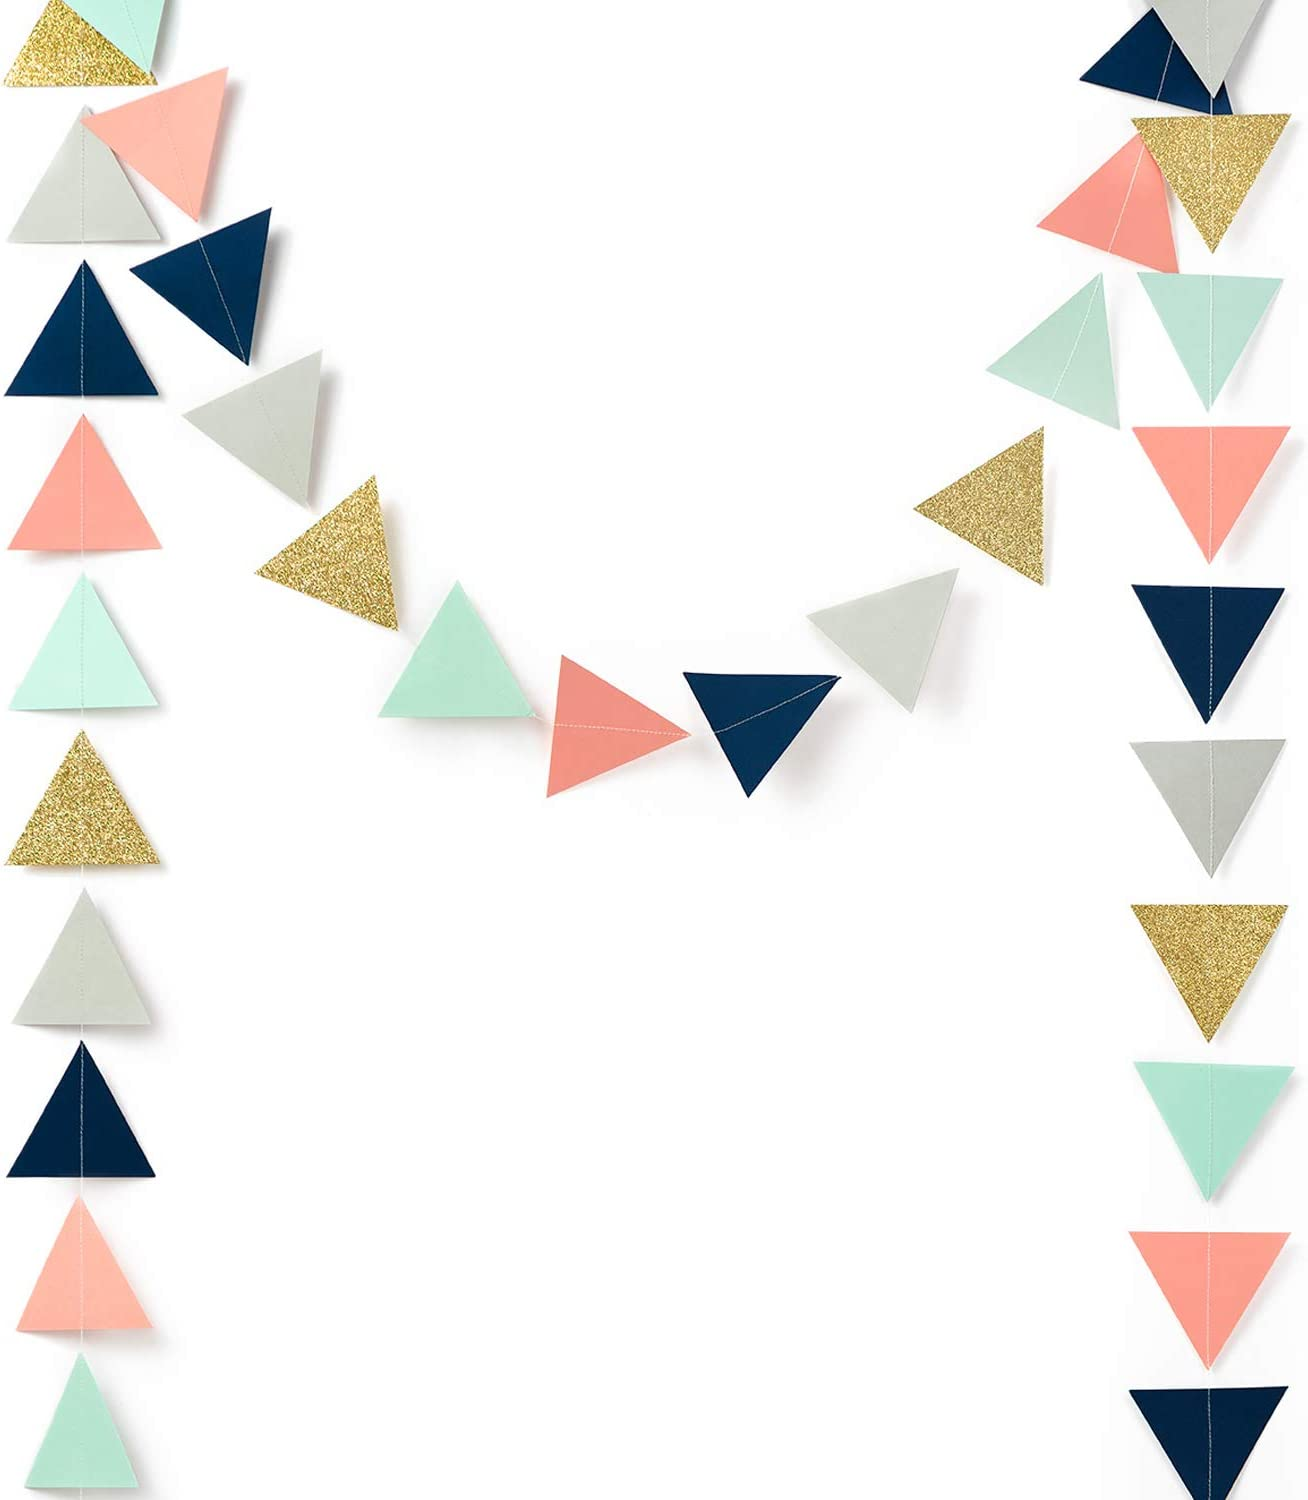 Paper Garland Decorations, Triangle Bunting Garland, Tribe Party Banner (Gold Glitter, Navy Blue, Mint, Gray, Coral) for Wedding Decor, Birthday Party, Baby Shower, Bridal Shower, 10 Feet